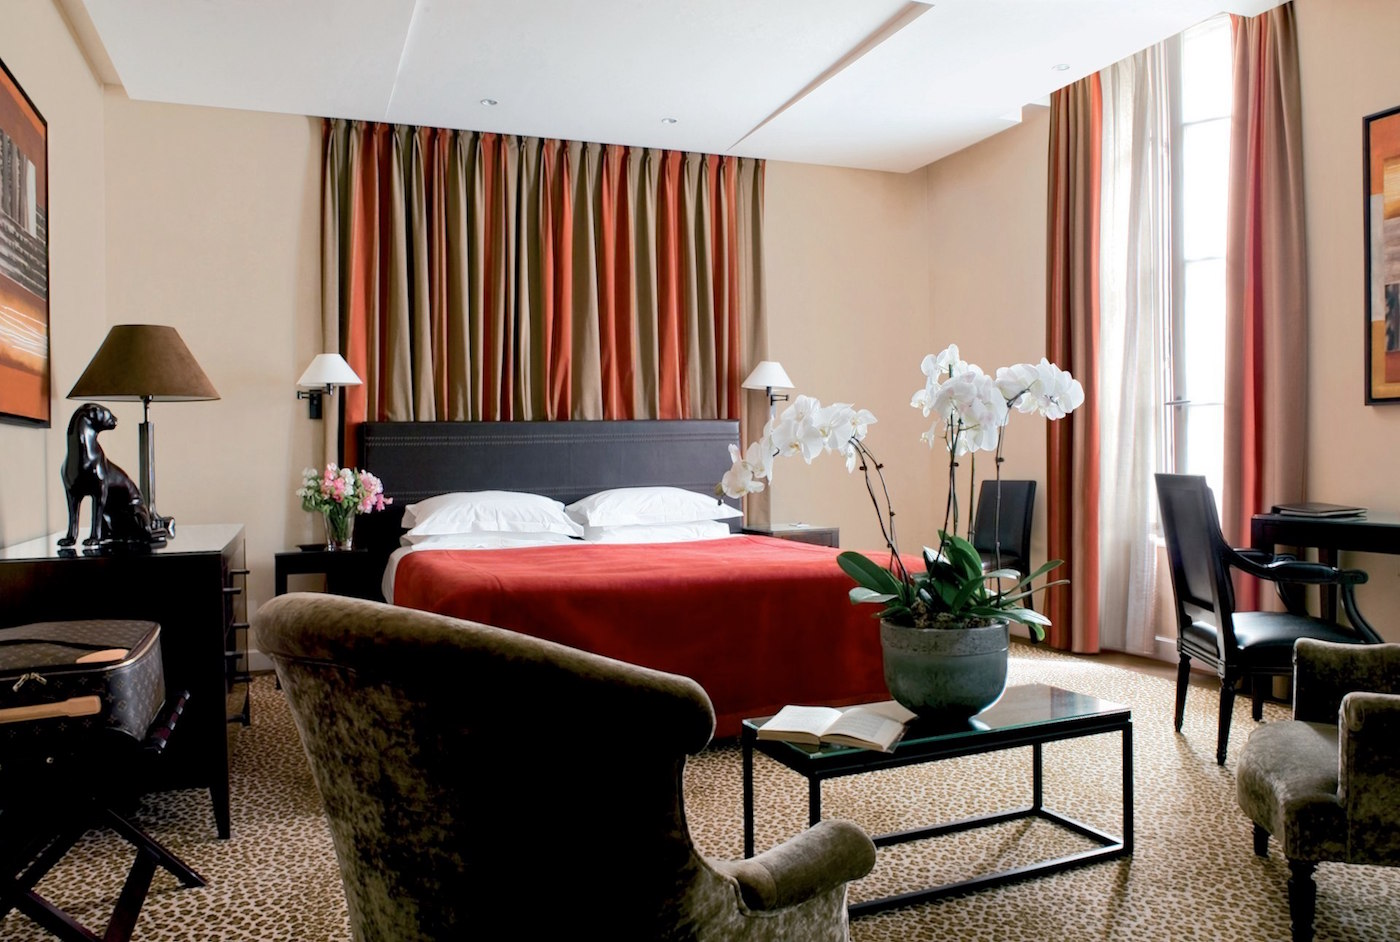 prestige-room-Esprit-Saint-Germain-Paris